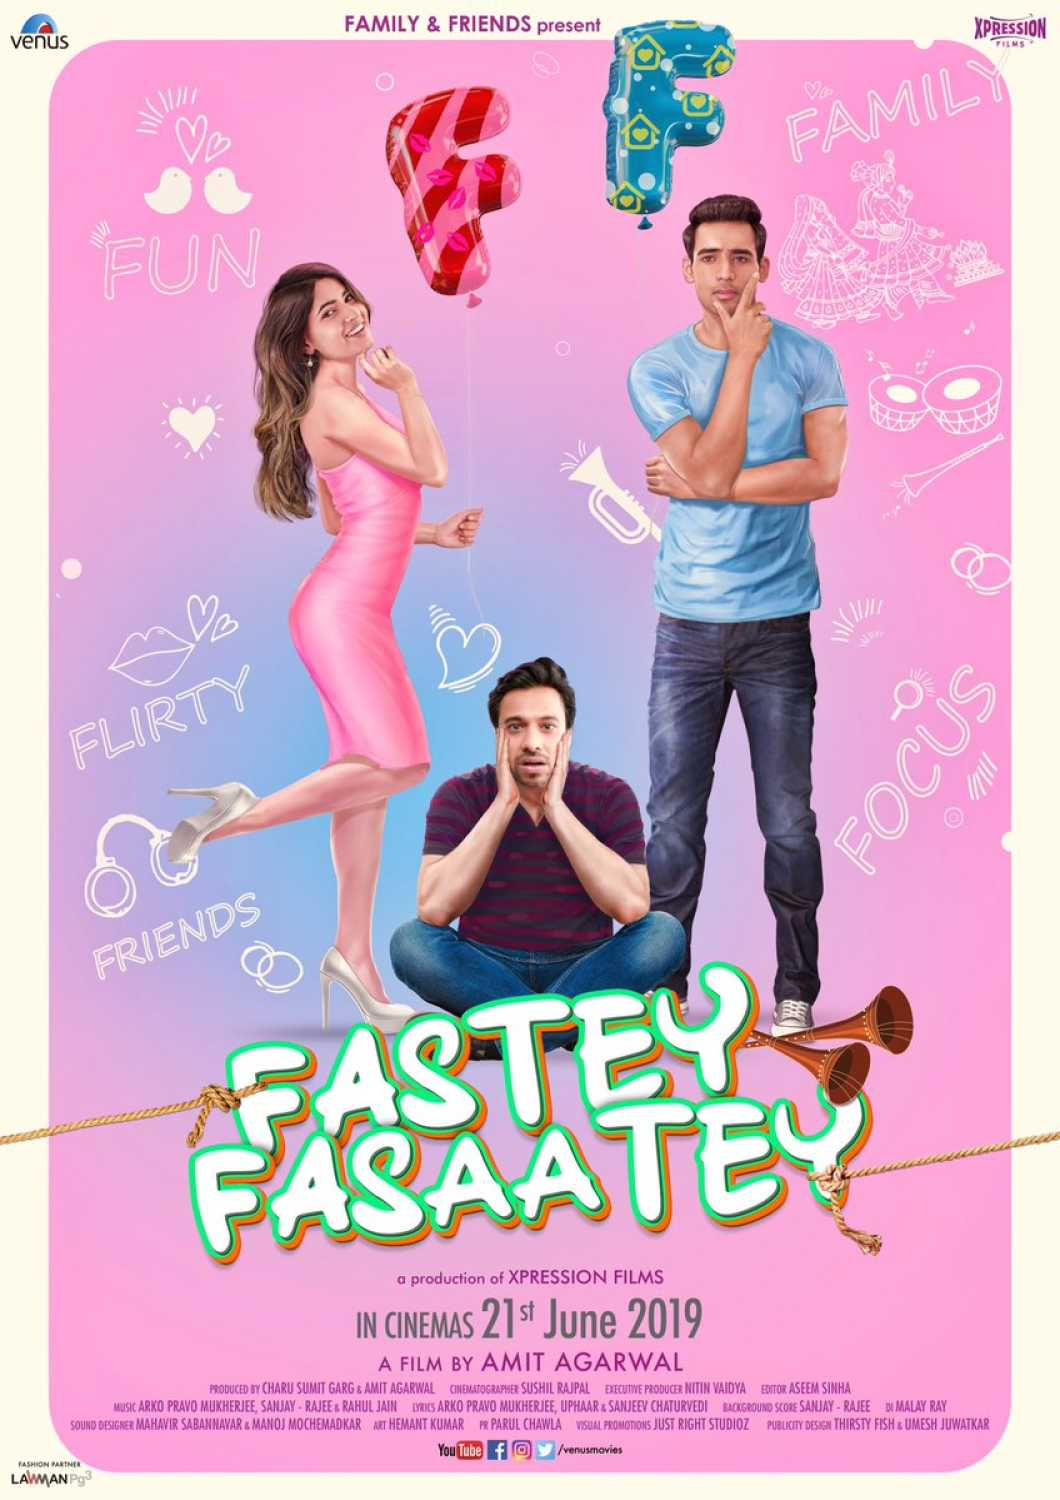 Fastey Fasaatey (2019) - Review, Star Cast, News, Photos